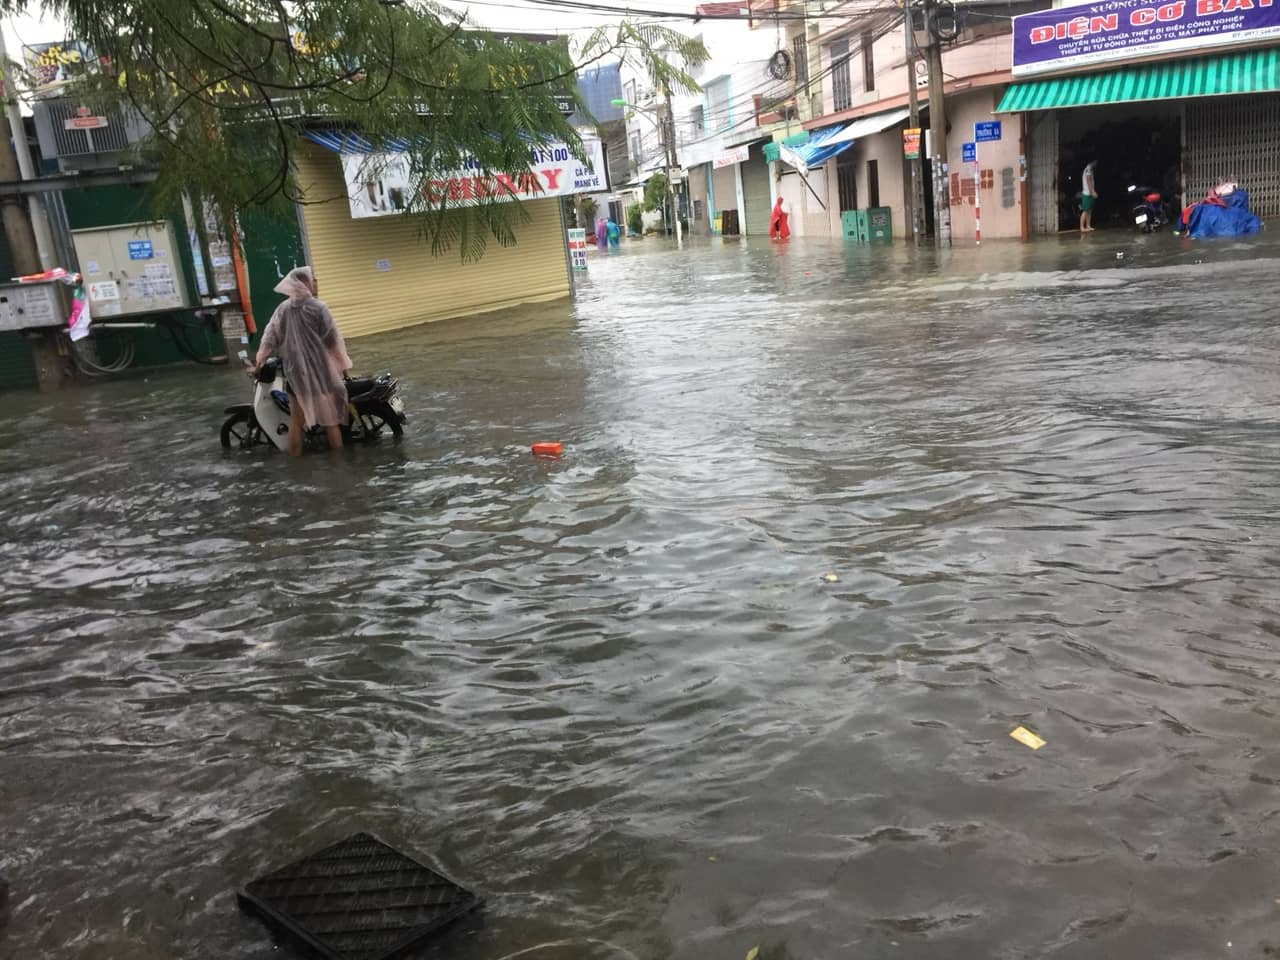 Flood image through Nha Trang, Khanh Hoa: Swimming cars like boat boats, objects in the sank house in the sea - Picture 1.